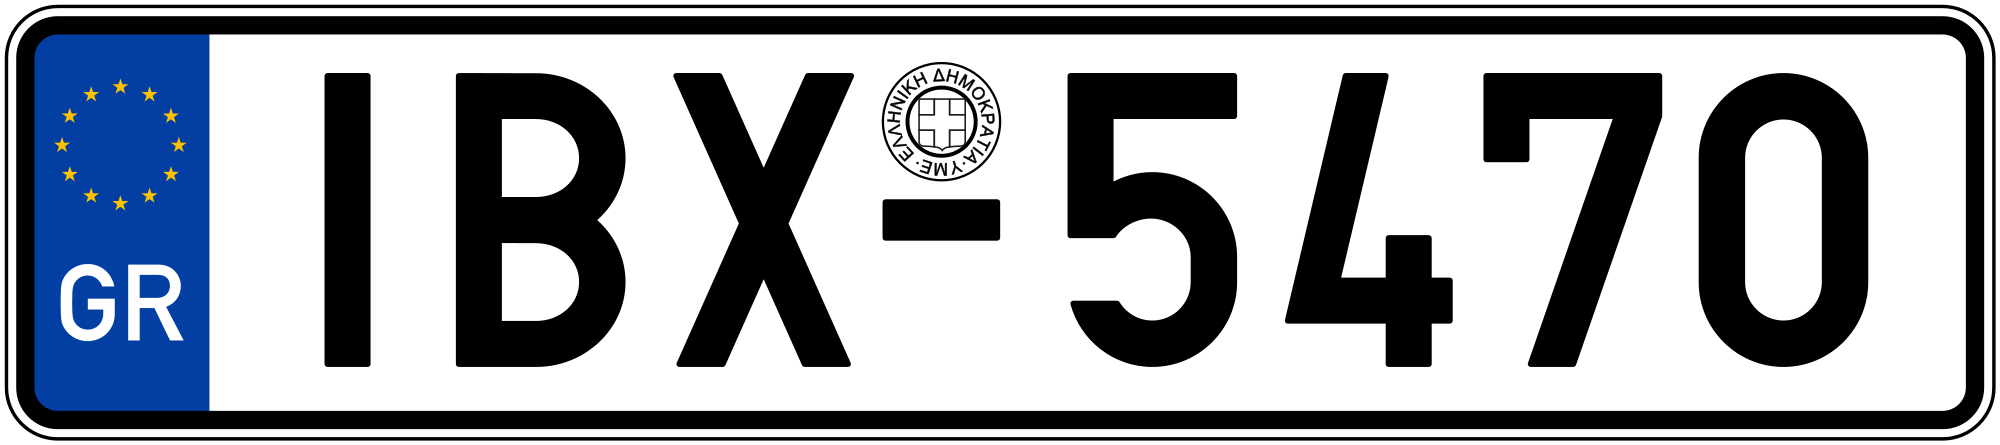 Number plate png » PNG Image.